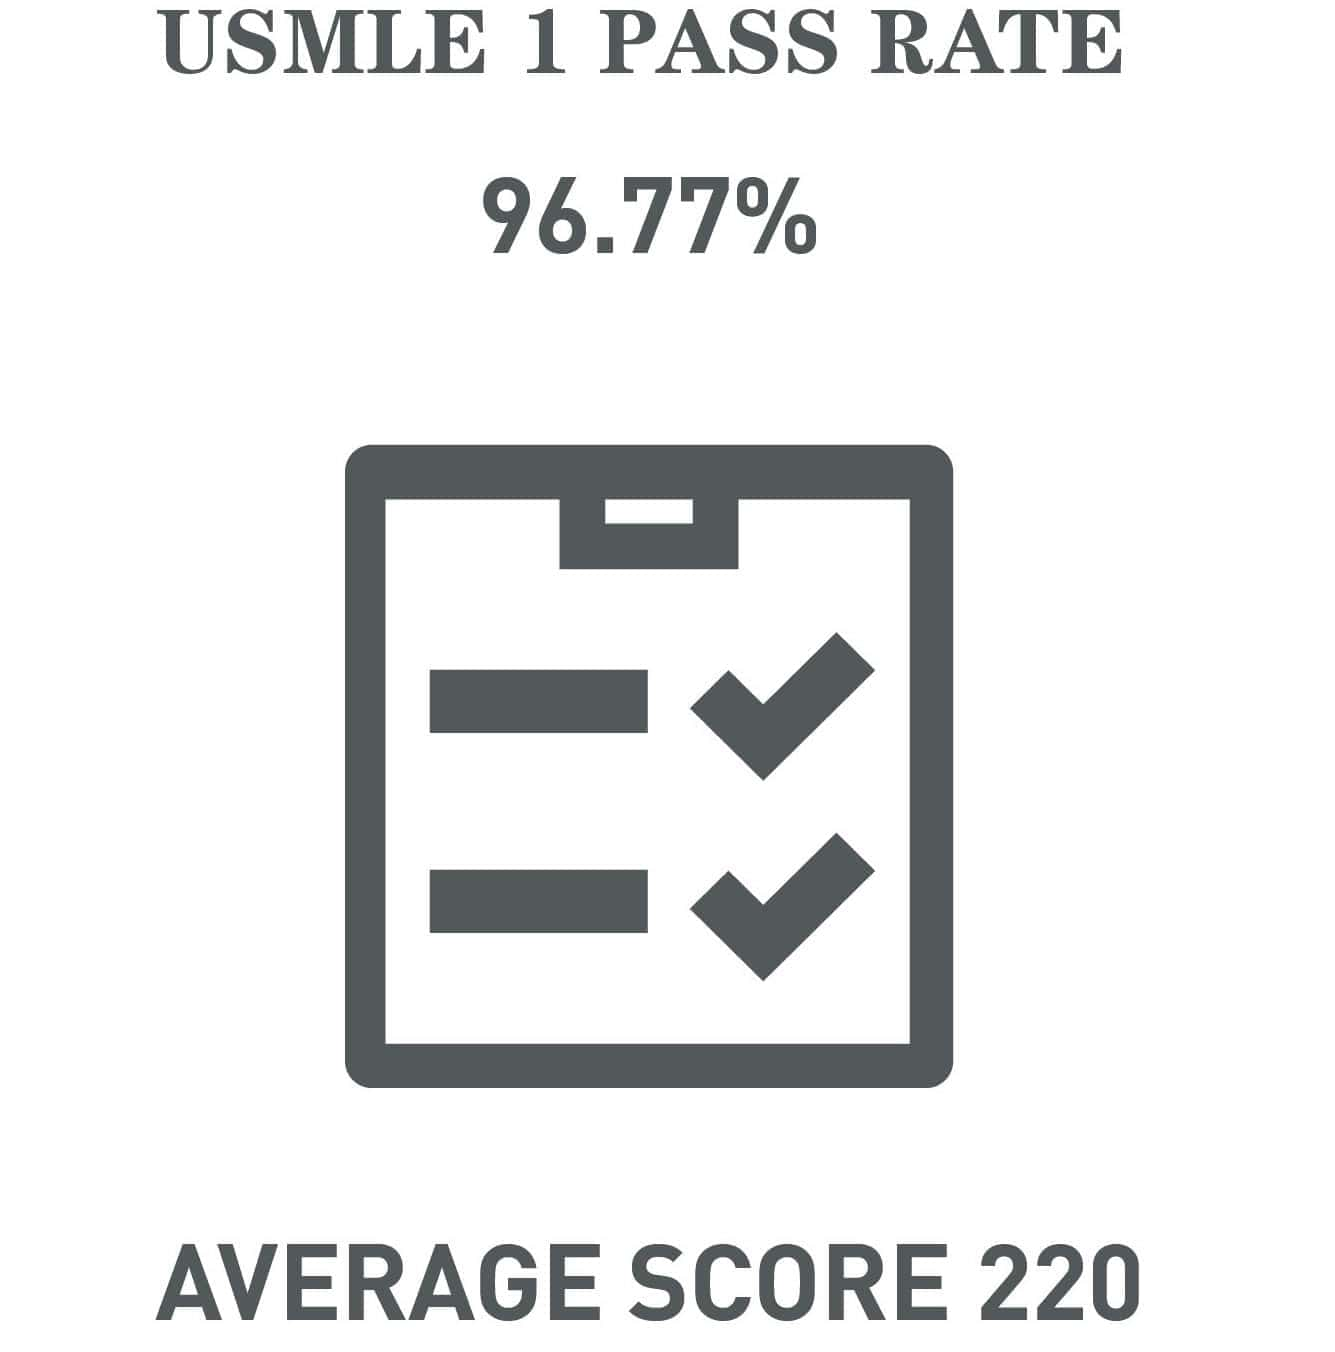 USMLE 1 Pass Rate